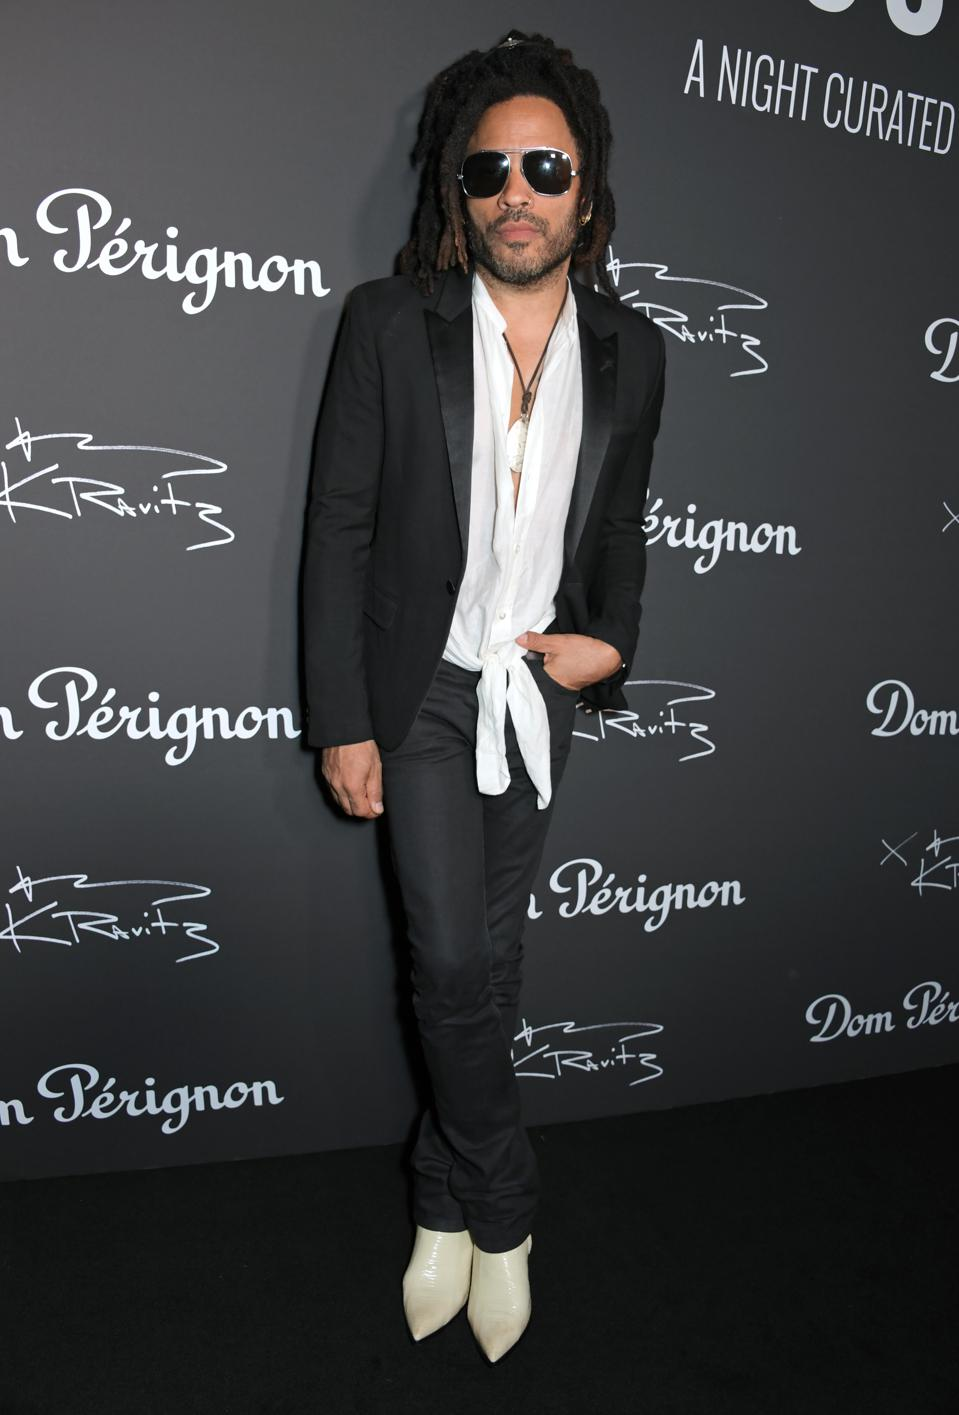 Dom Perignon Host Assemblage Exhibition Curated By Lenny Kravitz